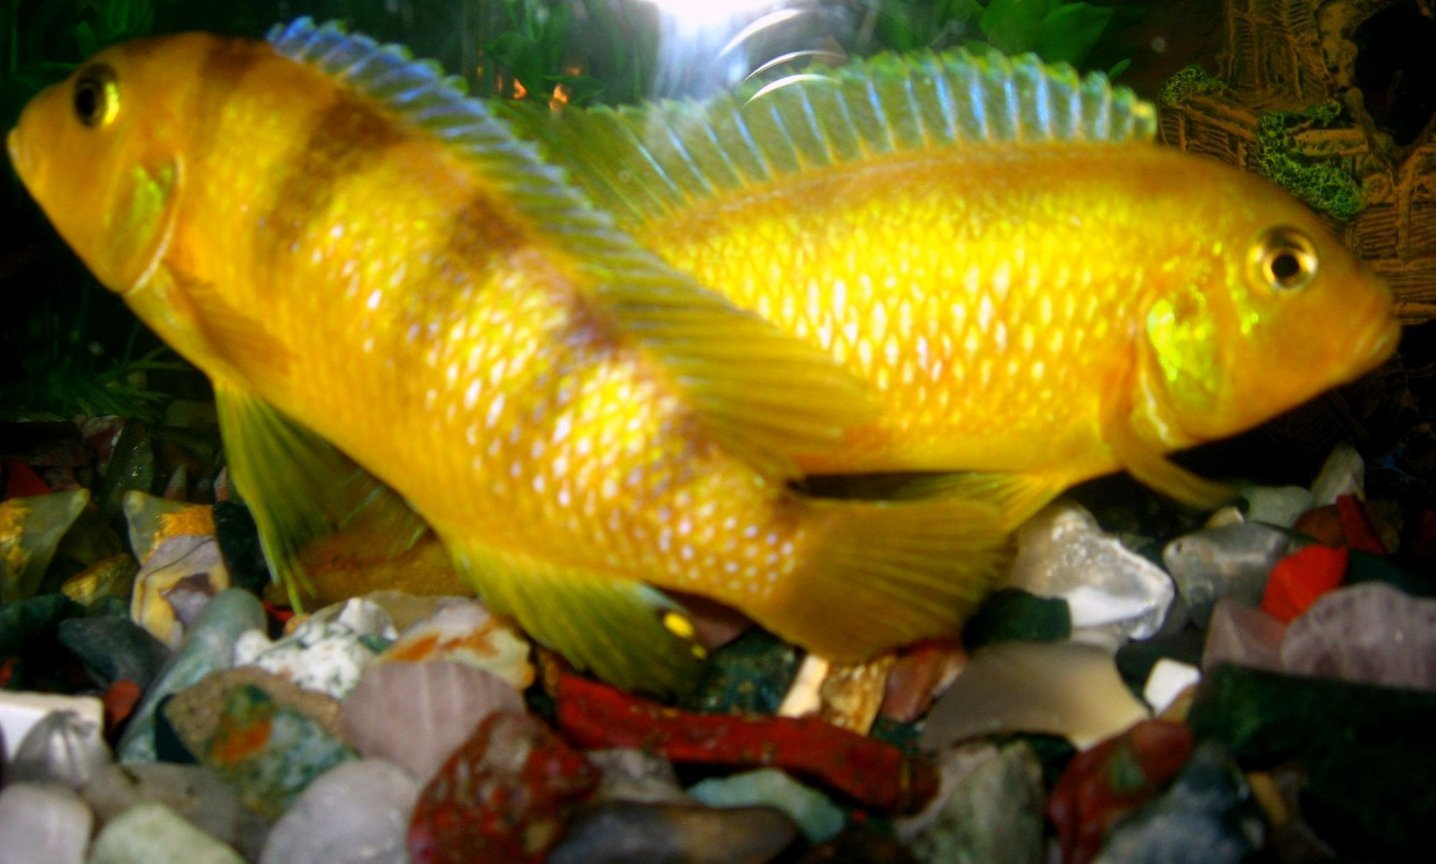 freshwater fish - labidochromis caeruleus - electric yellow cichlid stocking in 50 gallons tank - Male yellow Mbuna: Both had grown very big and had become terror for other fishes. Had to give them away.